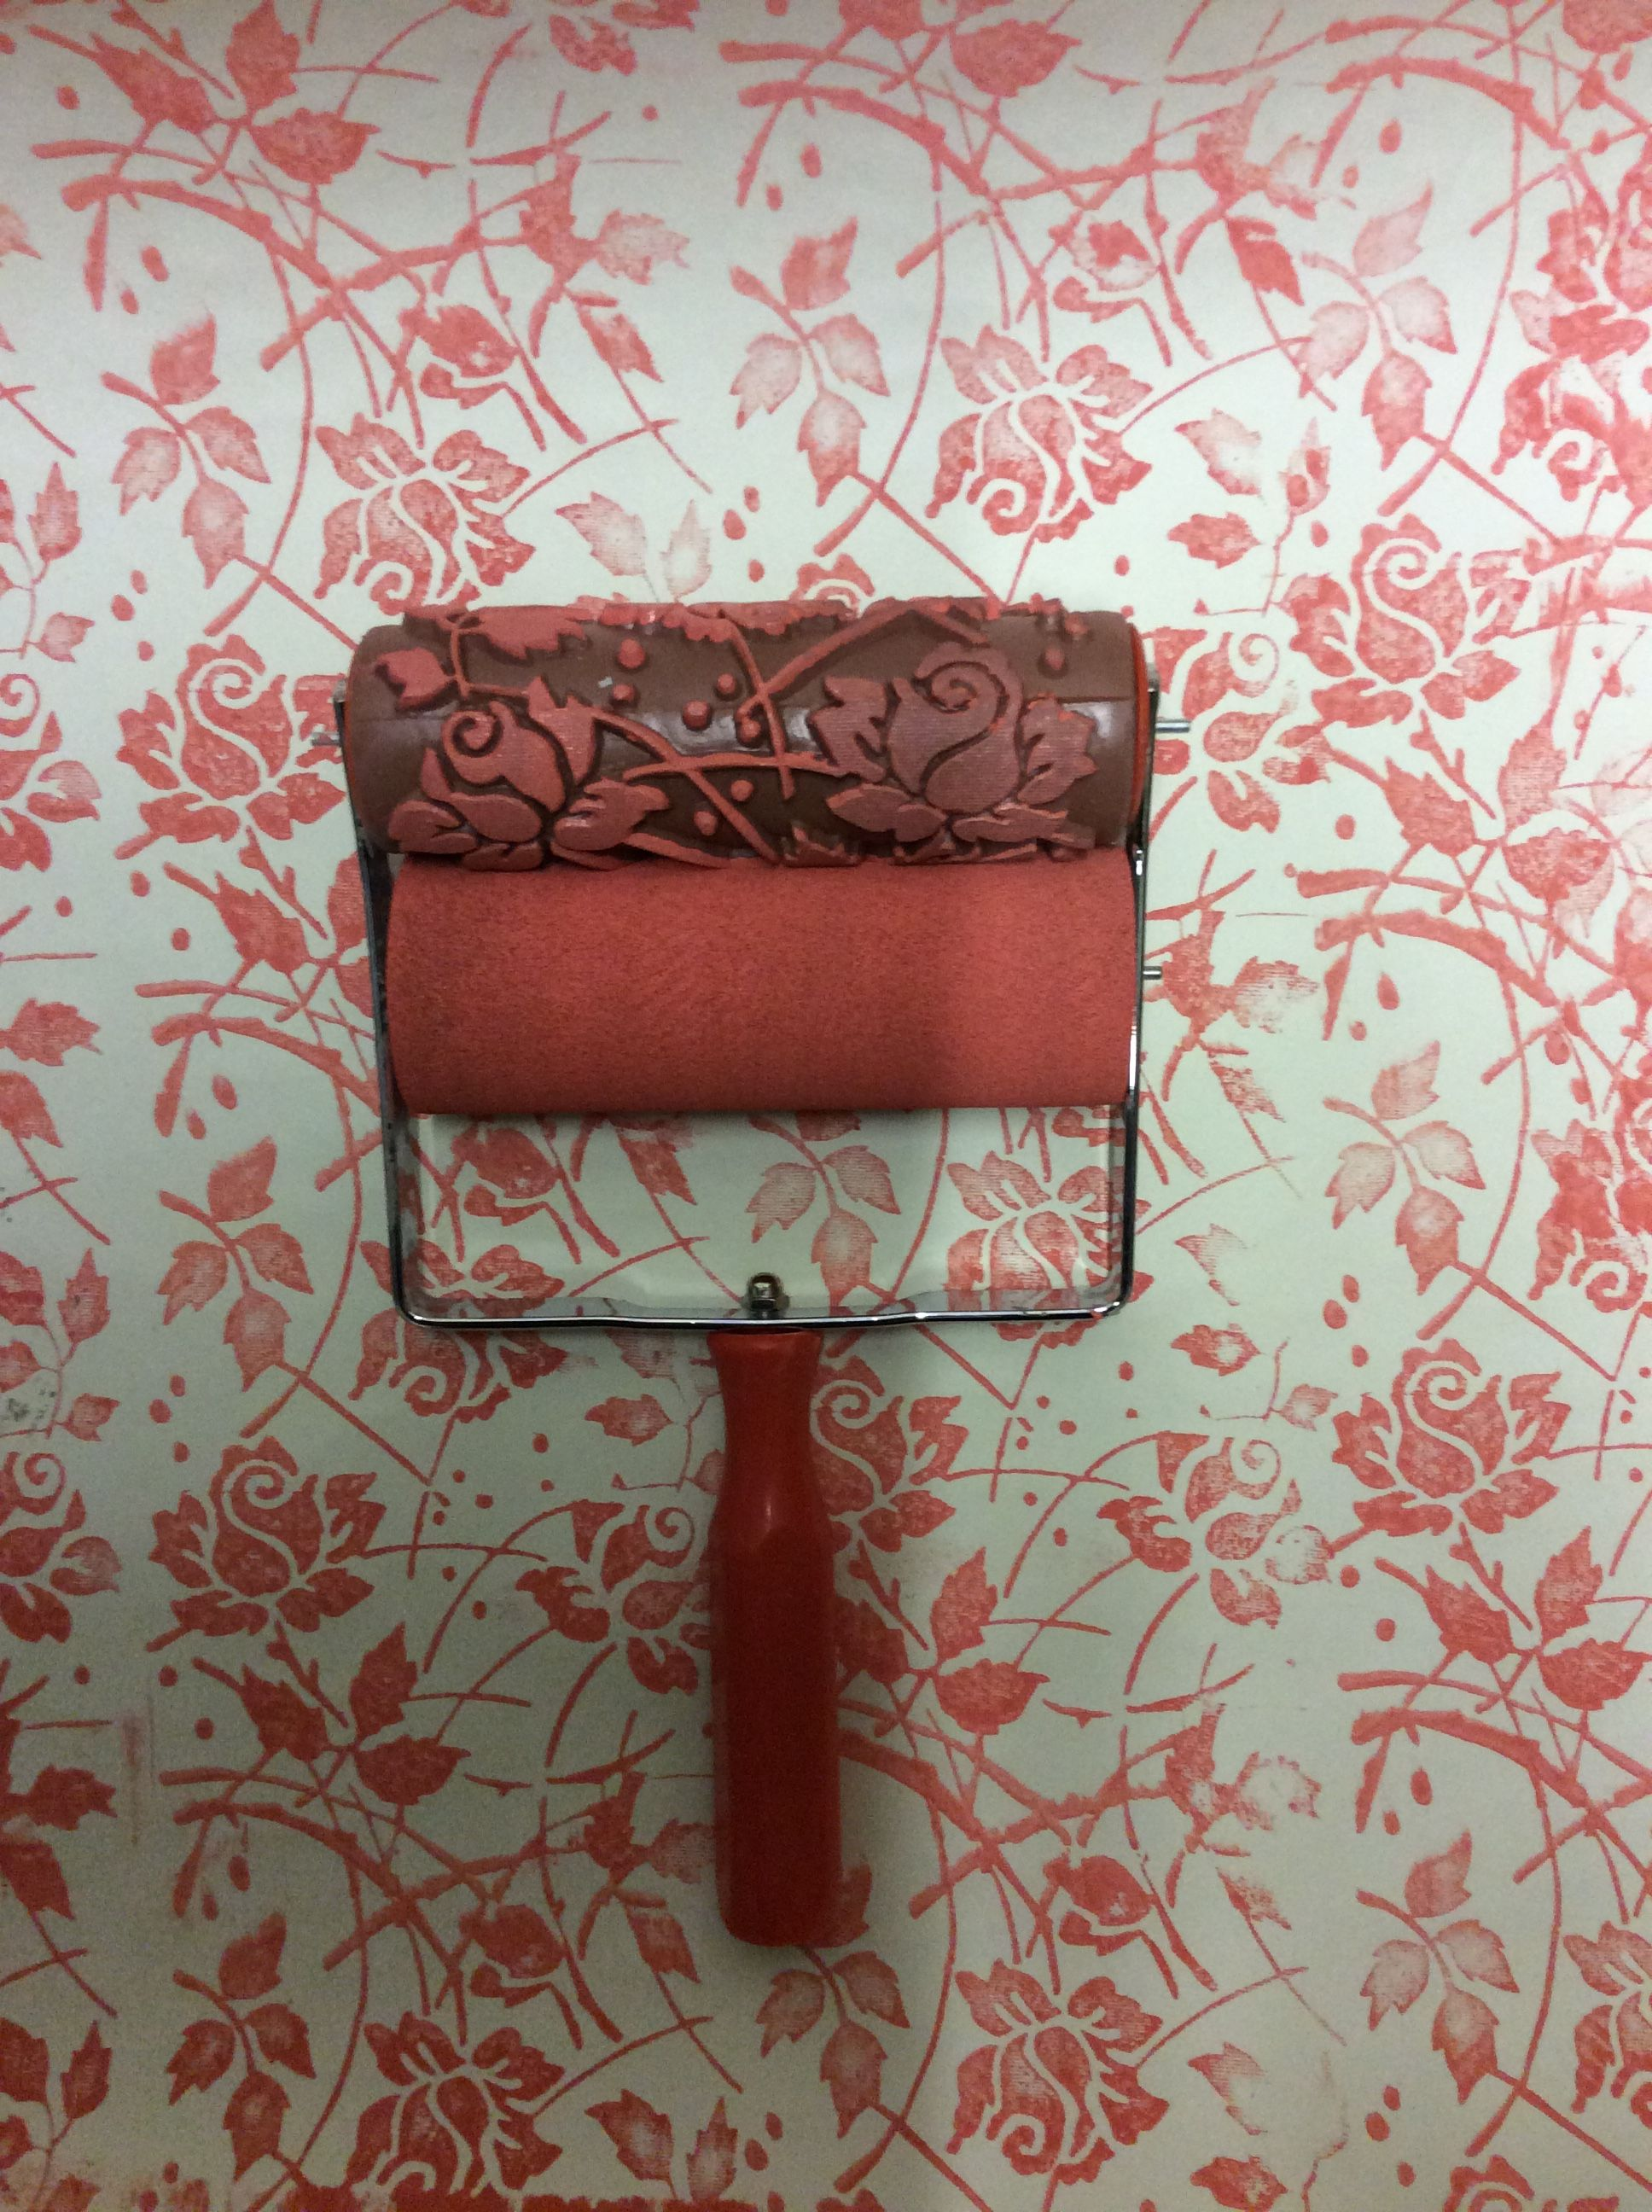 Wild Roses Themed Patterned Paint Roller Will Transform Any Wall